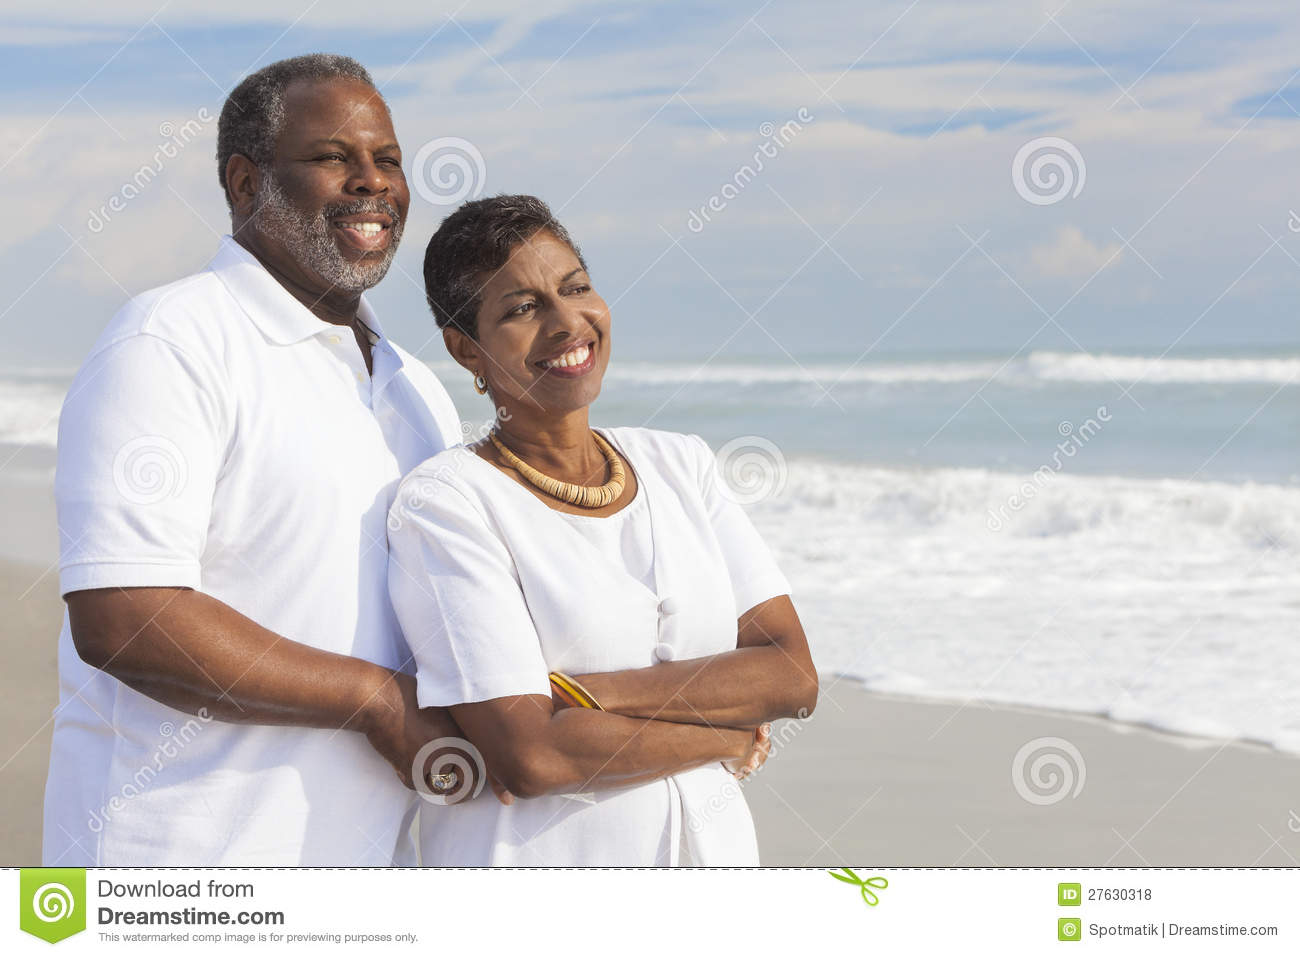 Happy African American Family Over Clouds Stock Image Pictures